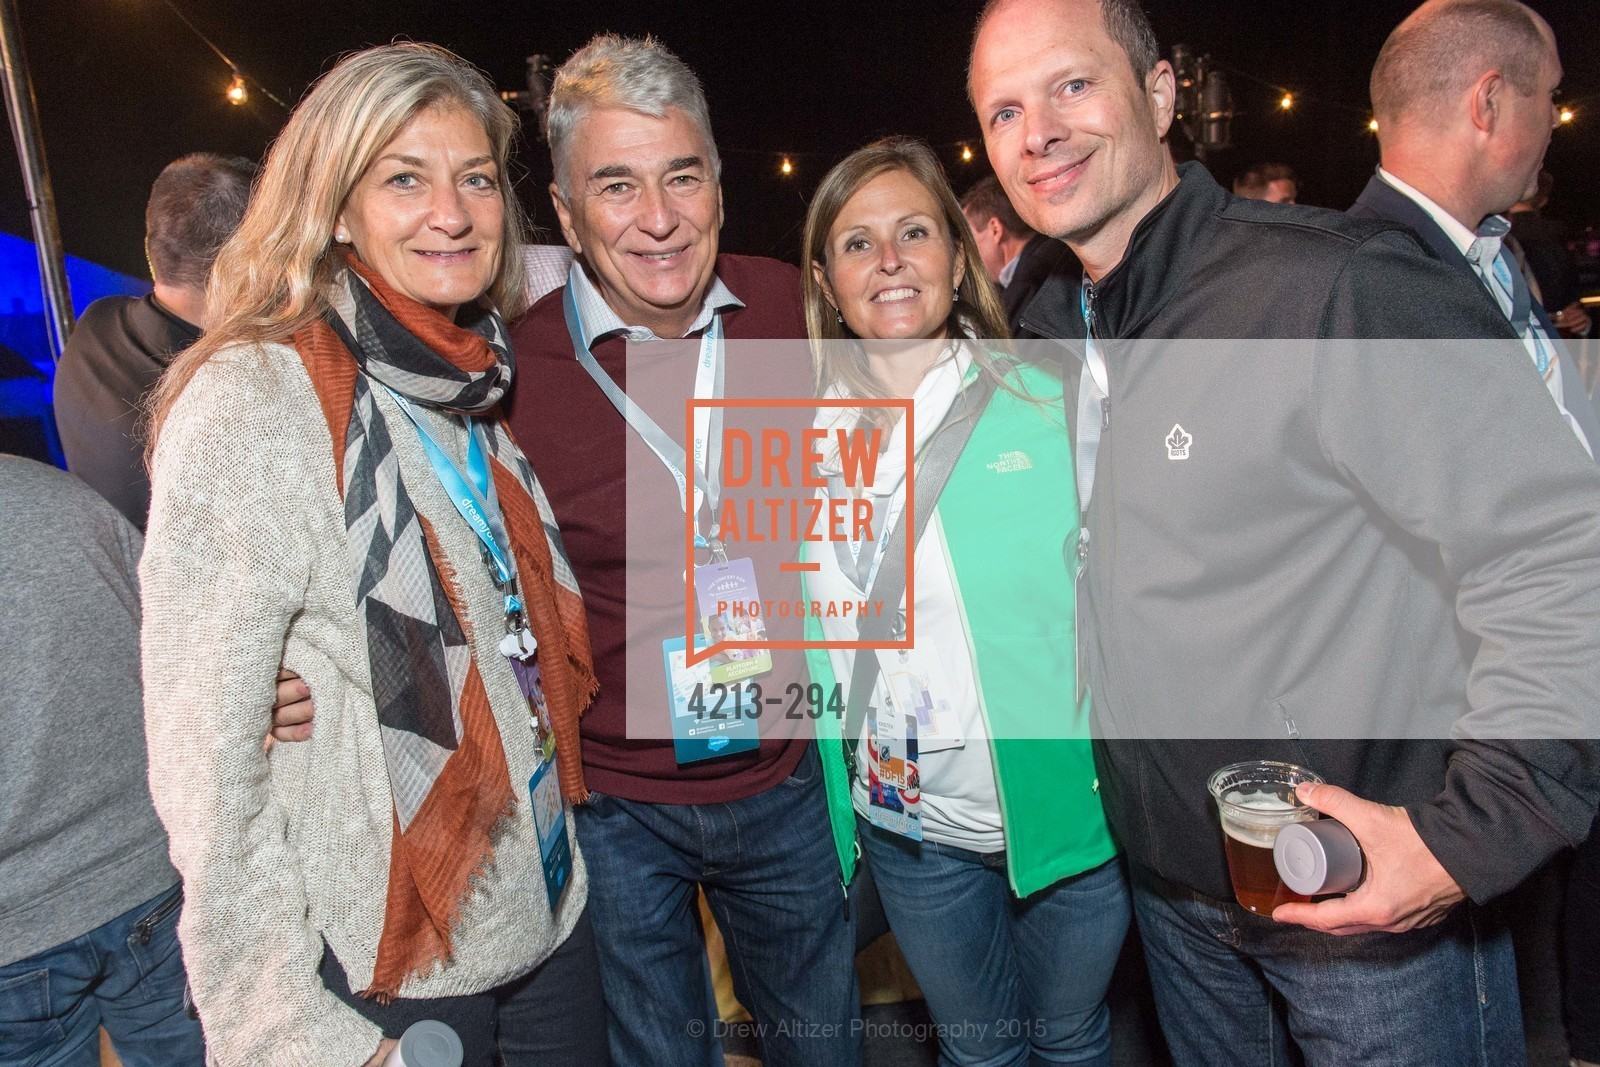 Susan Vokey, Chris Hoar, Kristin Hansen, Rick Pollack, The Concert For UCSF Benioff Children's Hospital, Pier 70, September 17th, 2015,Drew Altizer, Drew Altizer Photography, full-service agency, private events, San Francisco photographer, photographer california